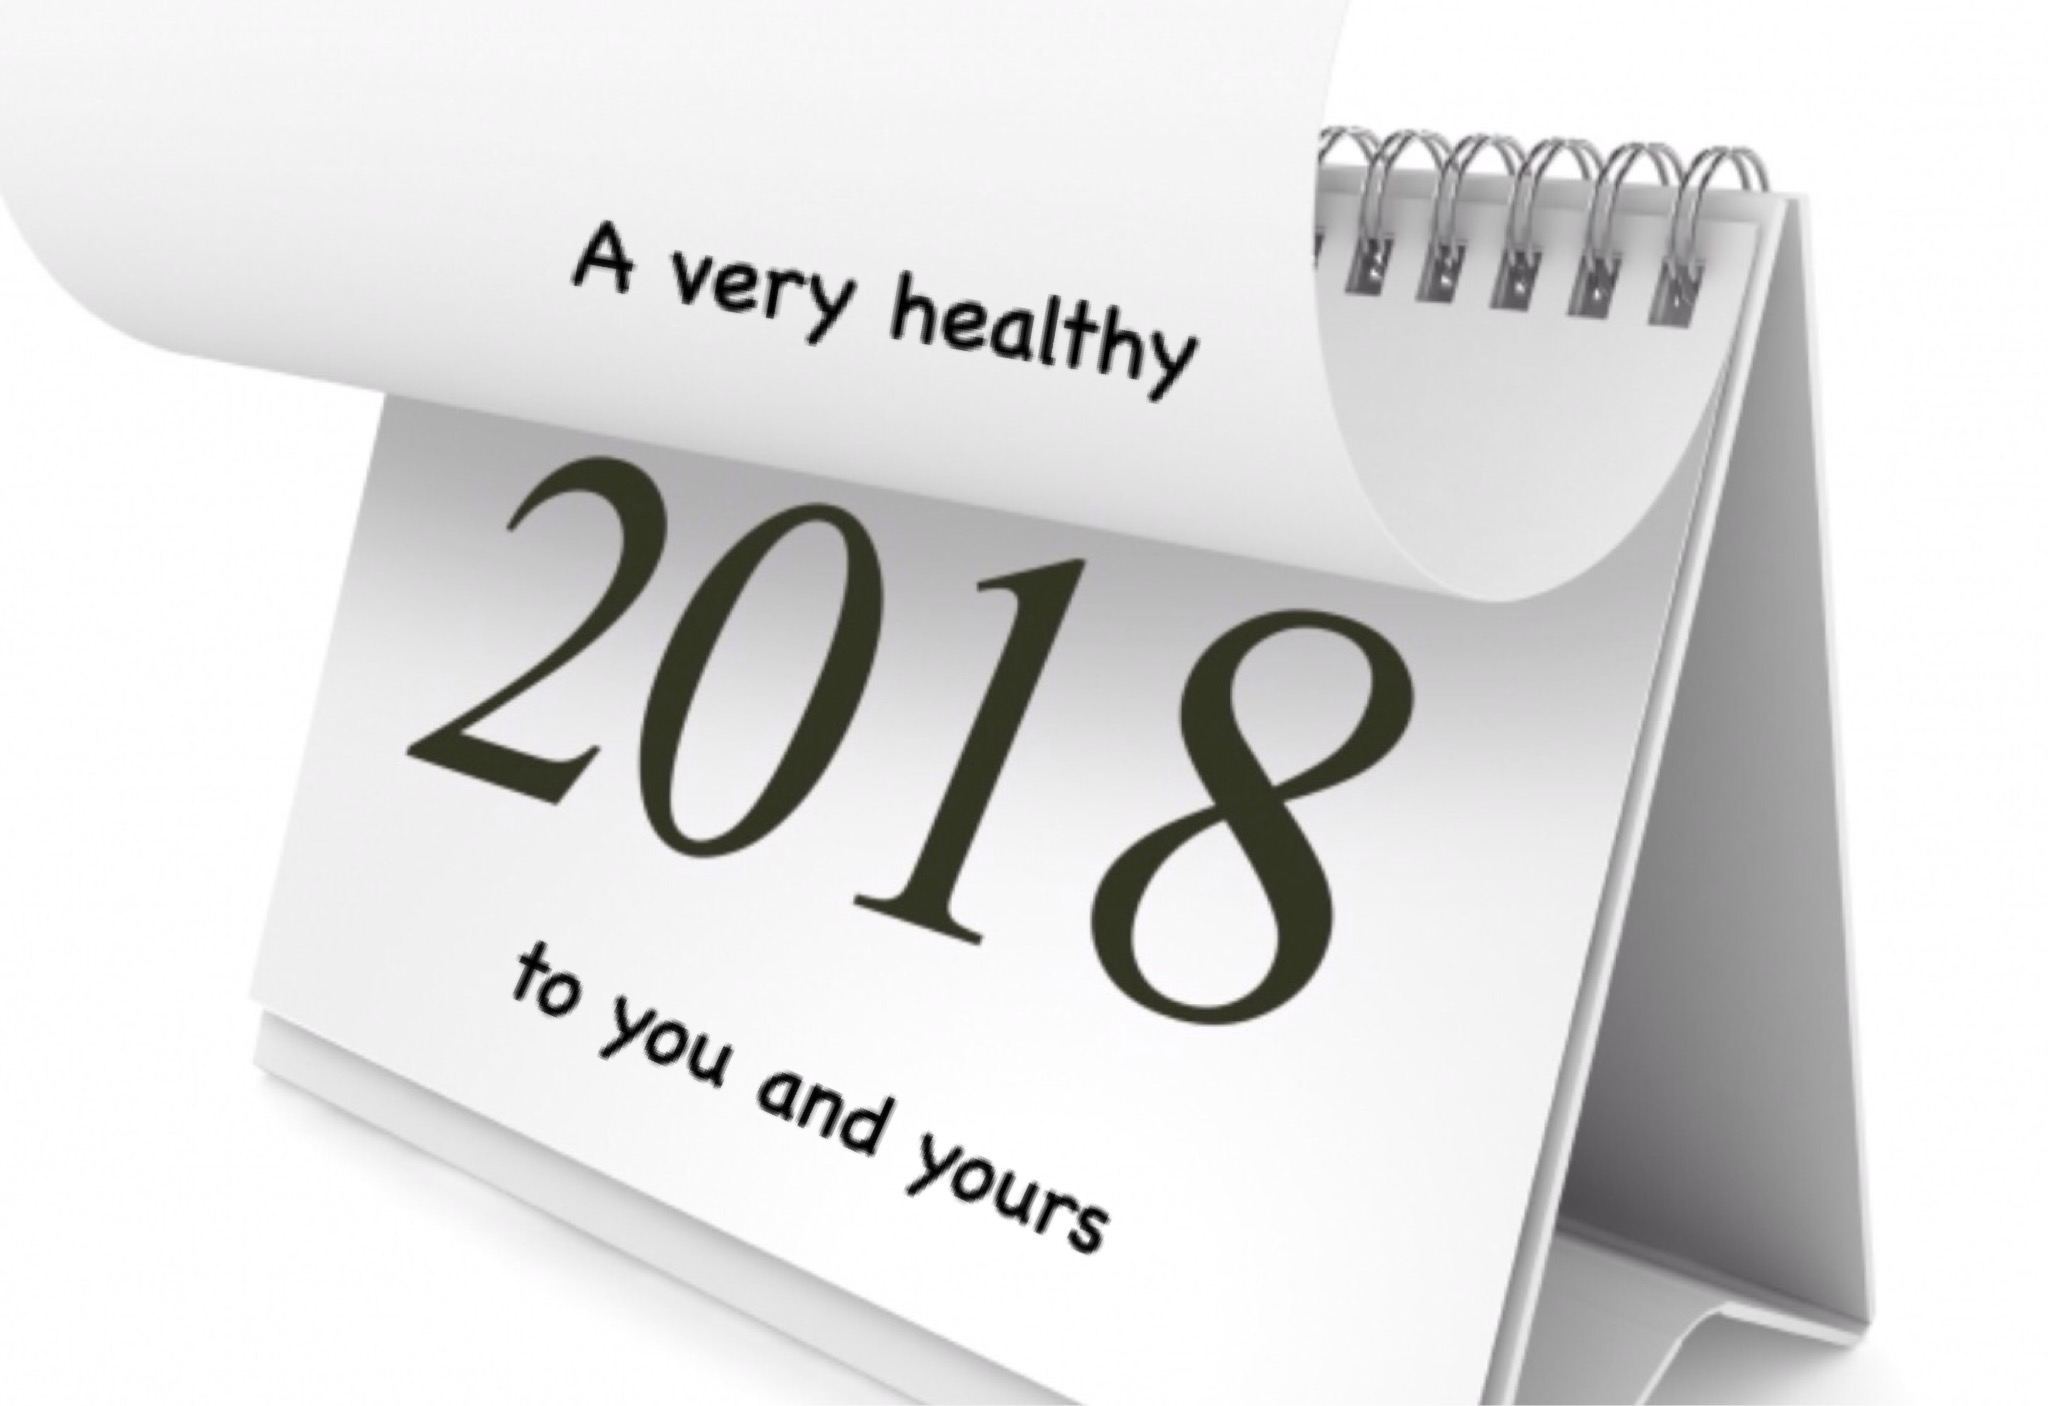 Health in 2018